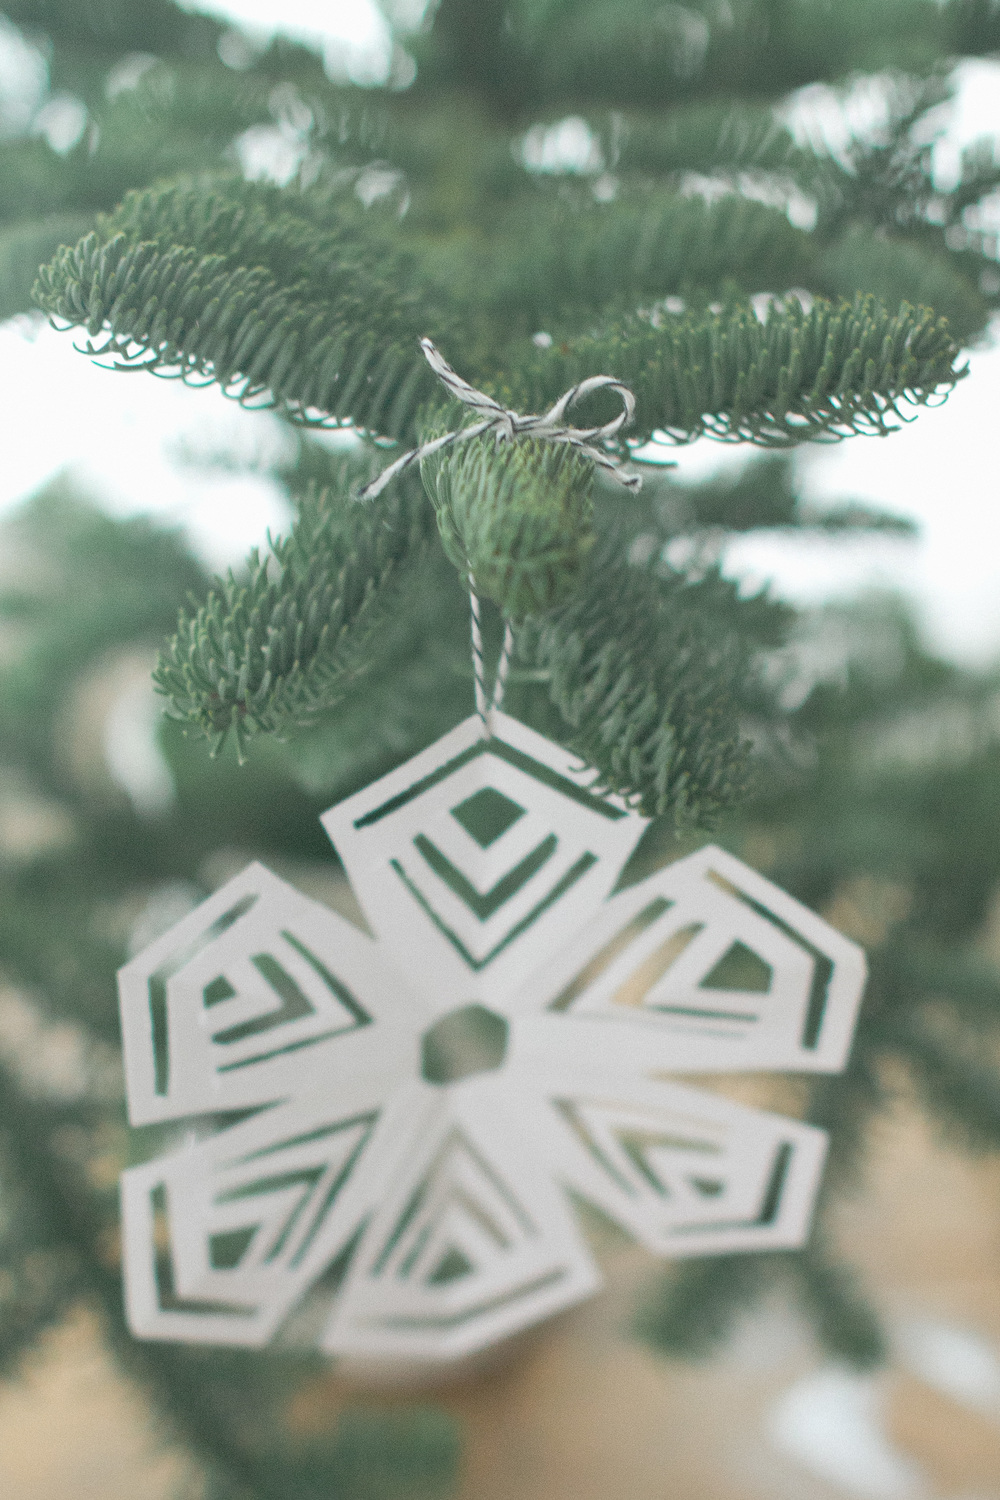 Tie on ornaments with bow in order to reuse the twine later | Keeper & Co. Blog